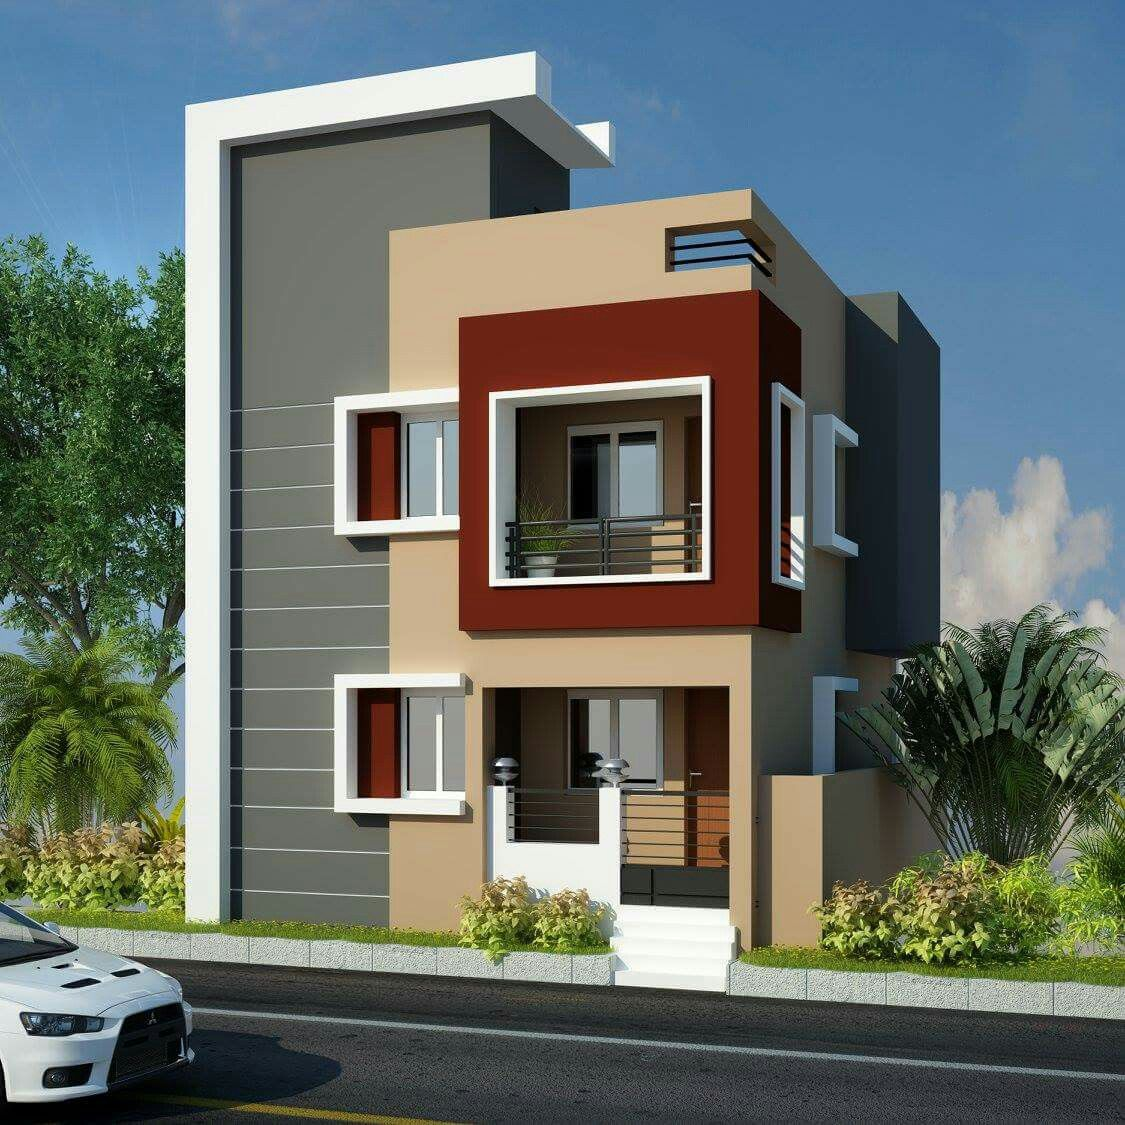 db3deea1533dd39f604efd76d4024ec0 - 19+ Modern Small House Front Elevation Designs PNG